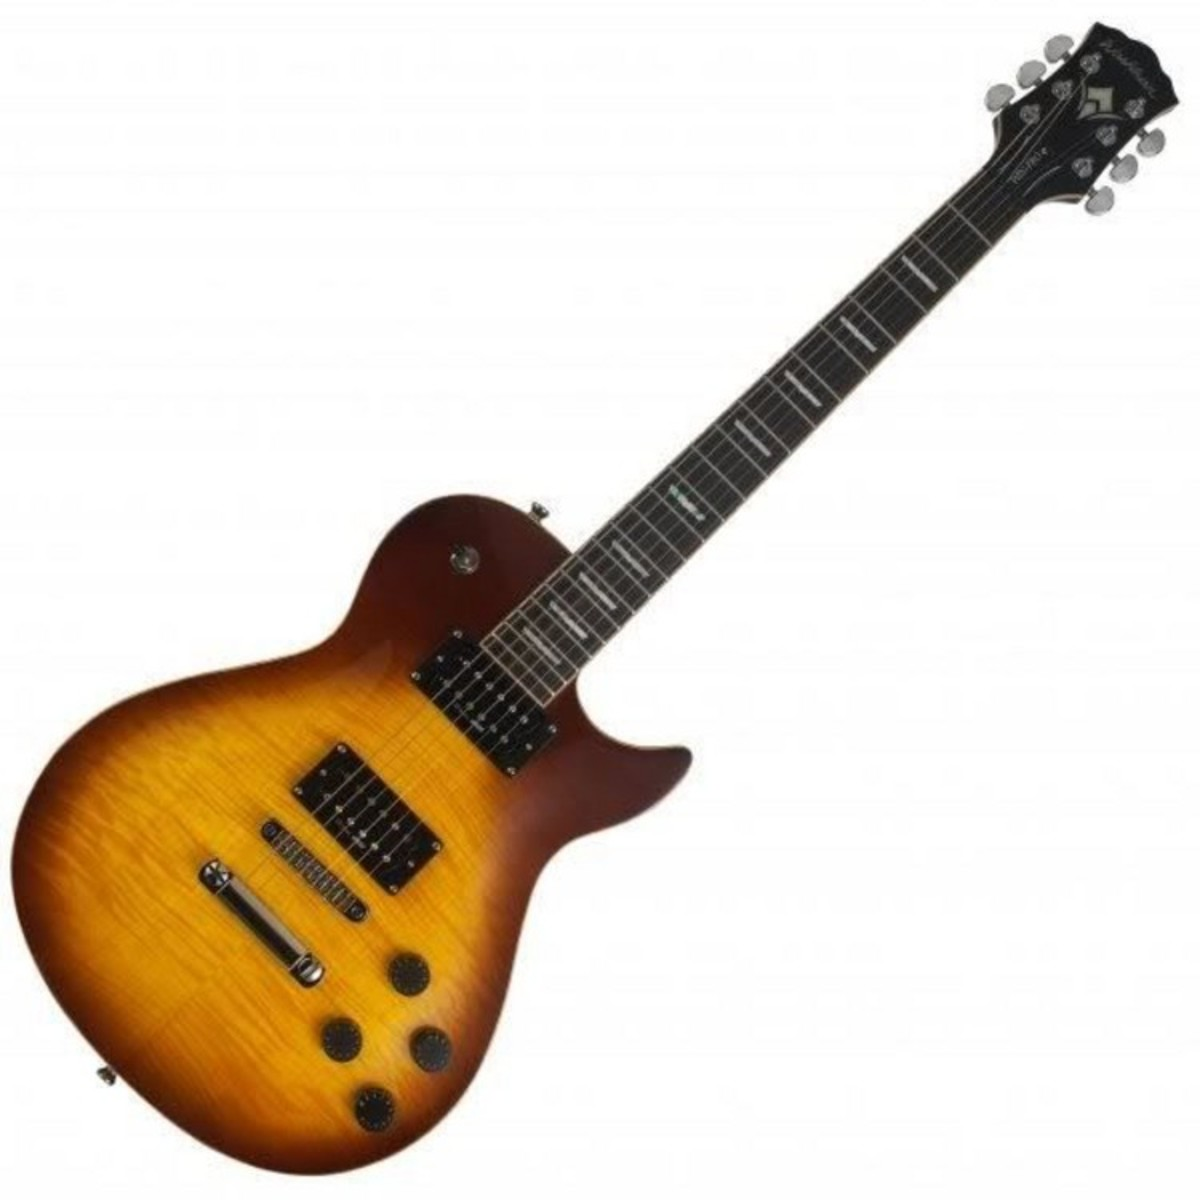 washburn idol win pro series electric guitar flame tobacco sunburst at. Black Bedroom Furniture Sets. Home Design Ideas